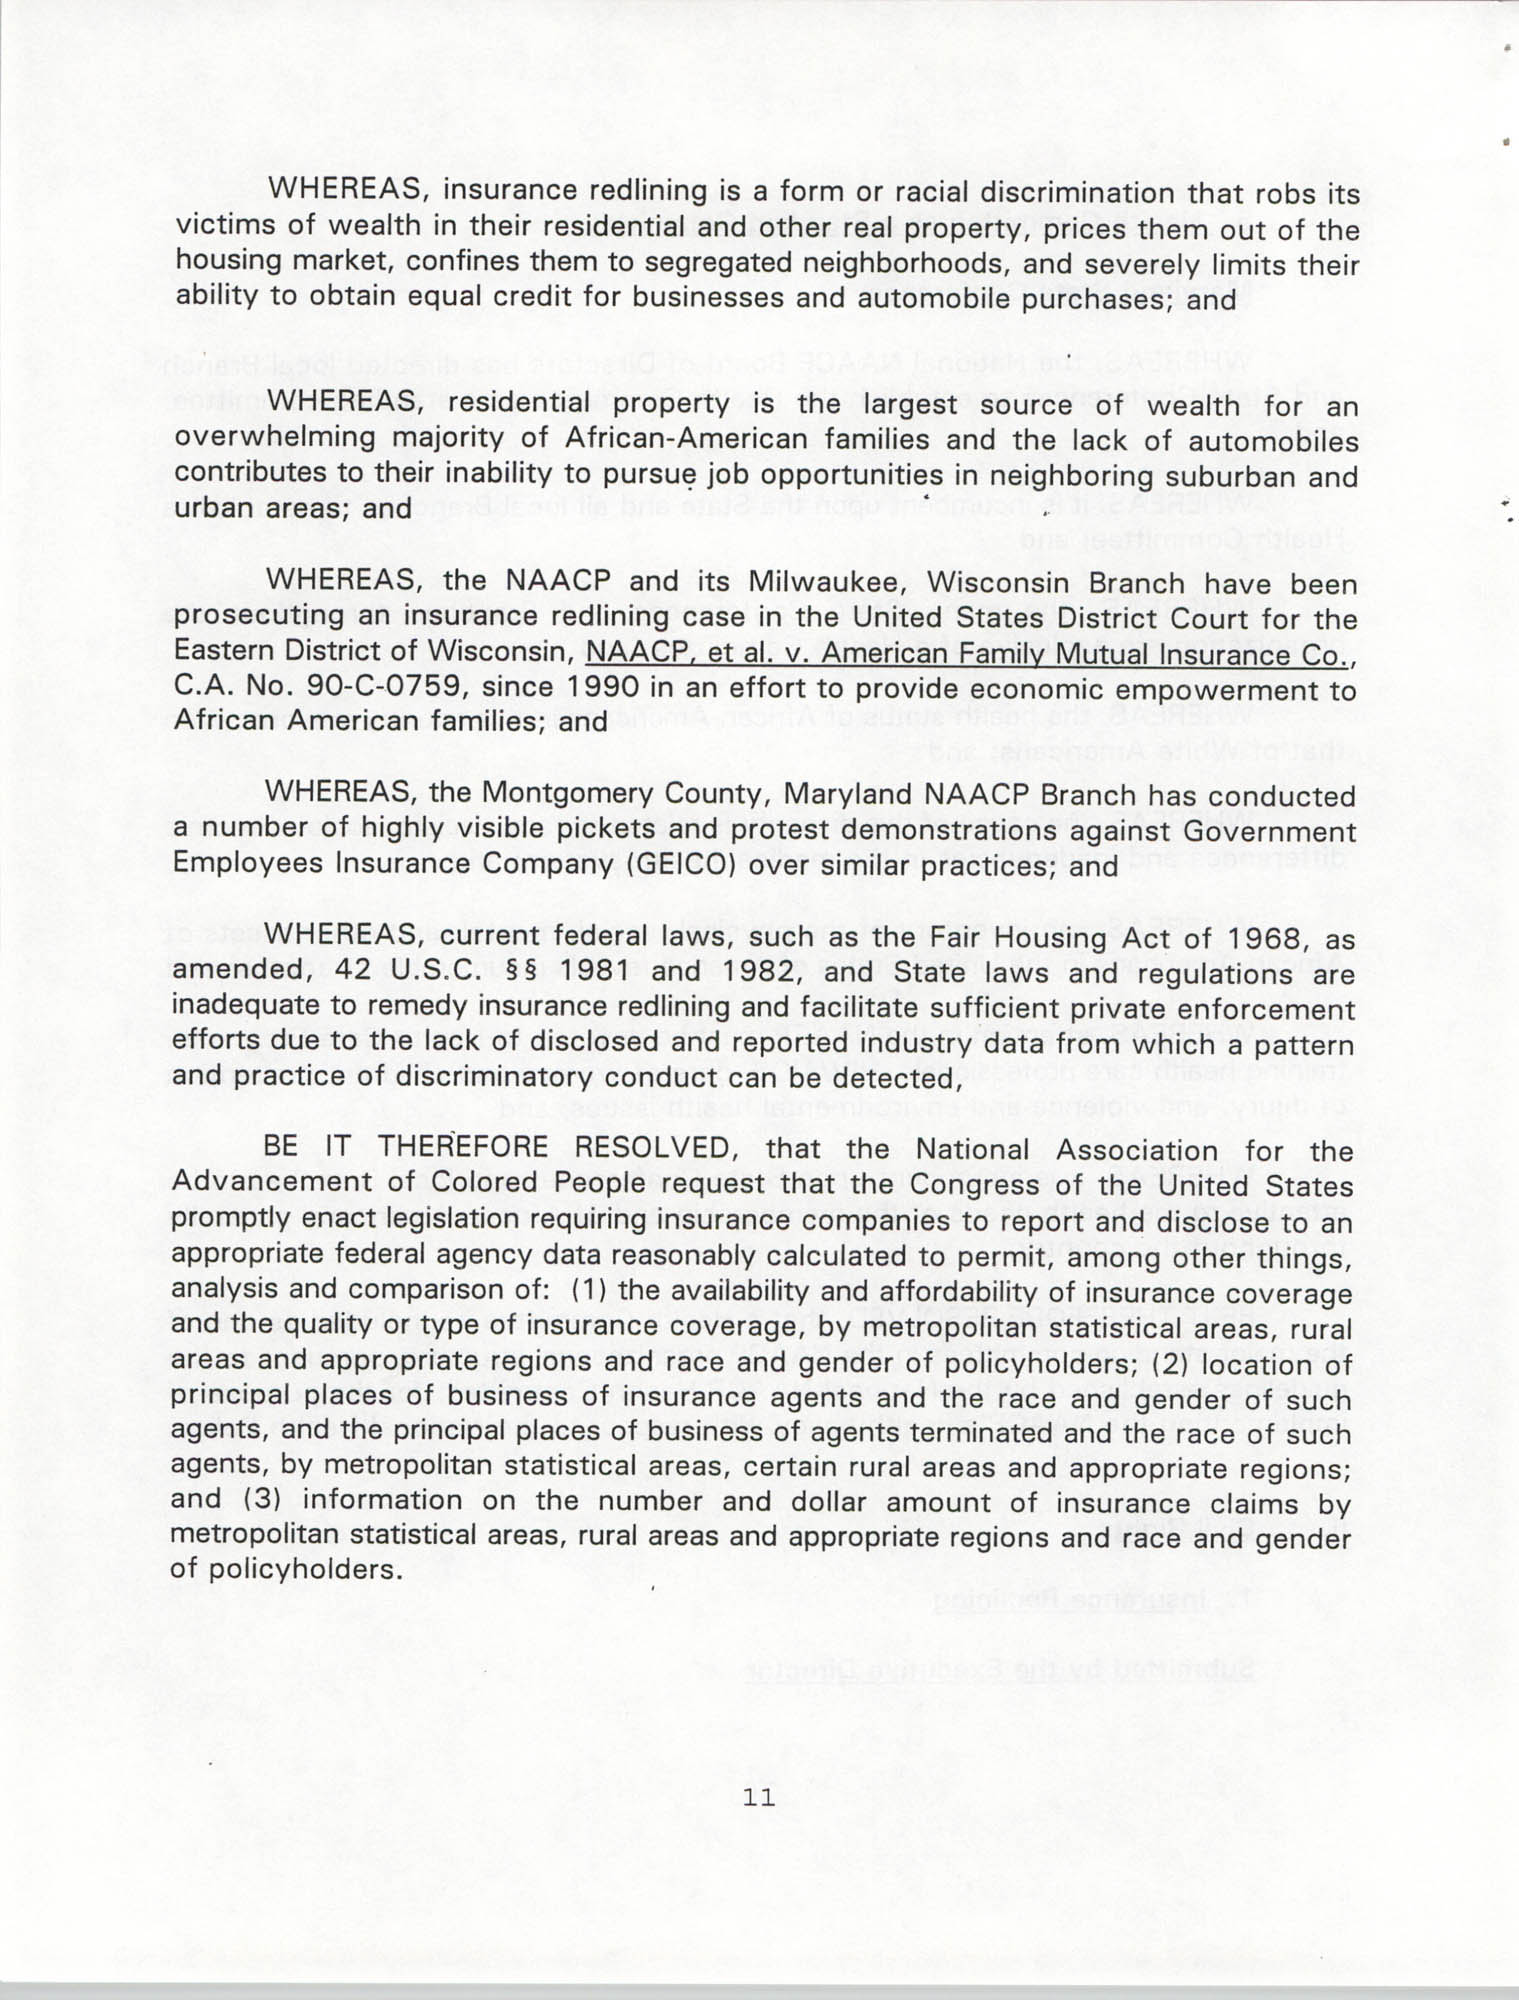 Resolutions Submitted Under Article X, Section 2 of the Constitution of the NAACP, 1994, Page 11